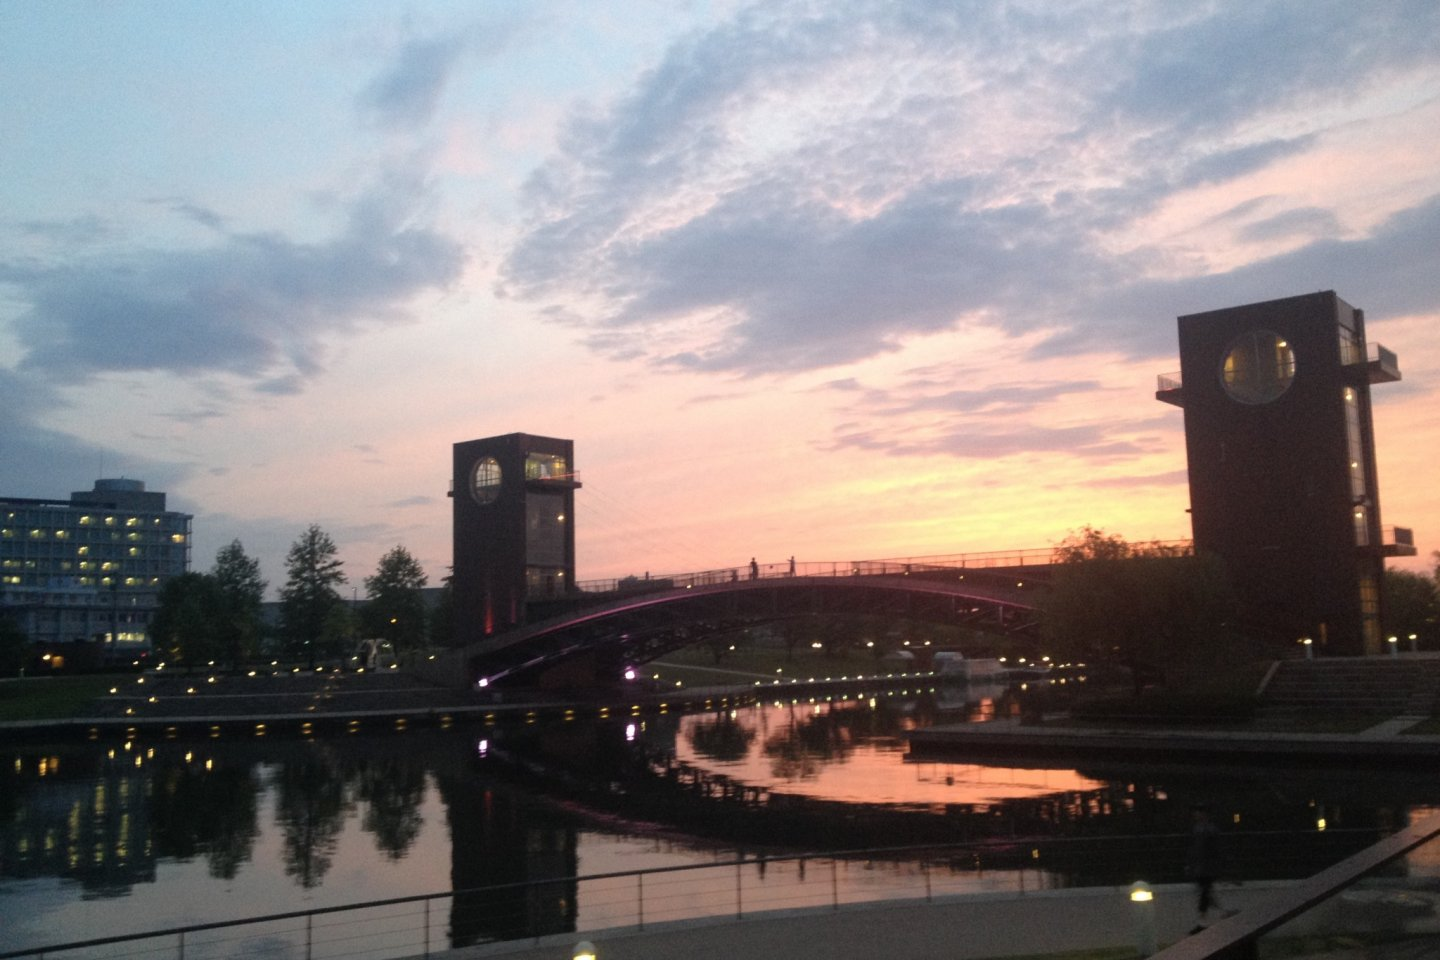 Sunset at Kansui Park's Tenmon Bridge from the porch of Starbucks